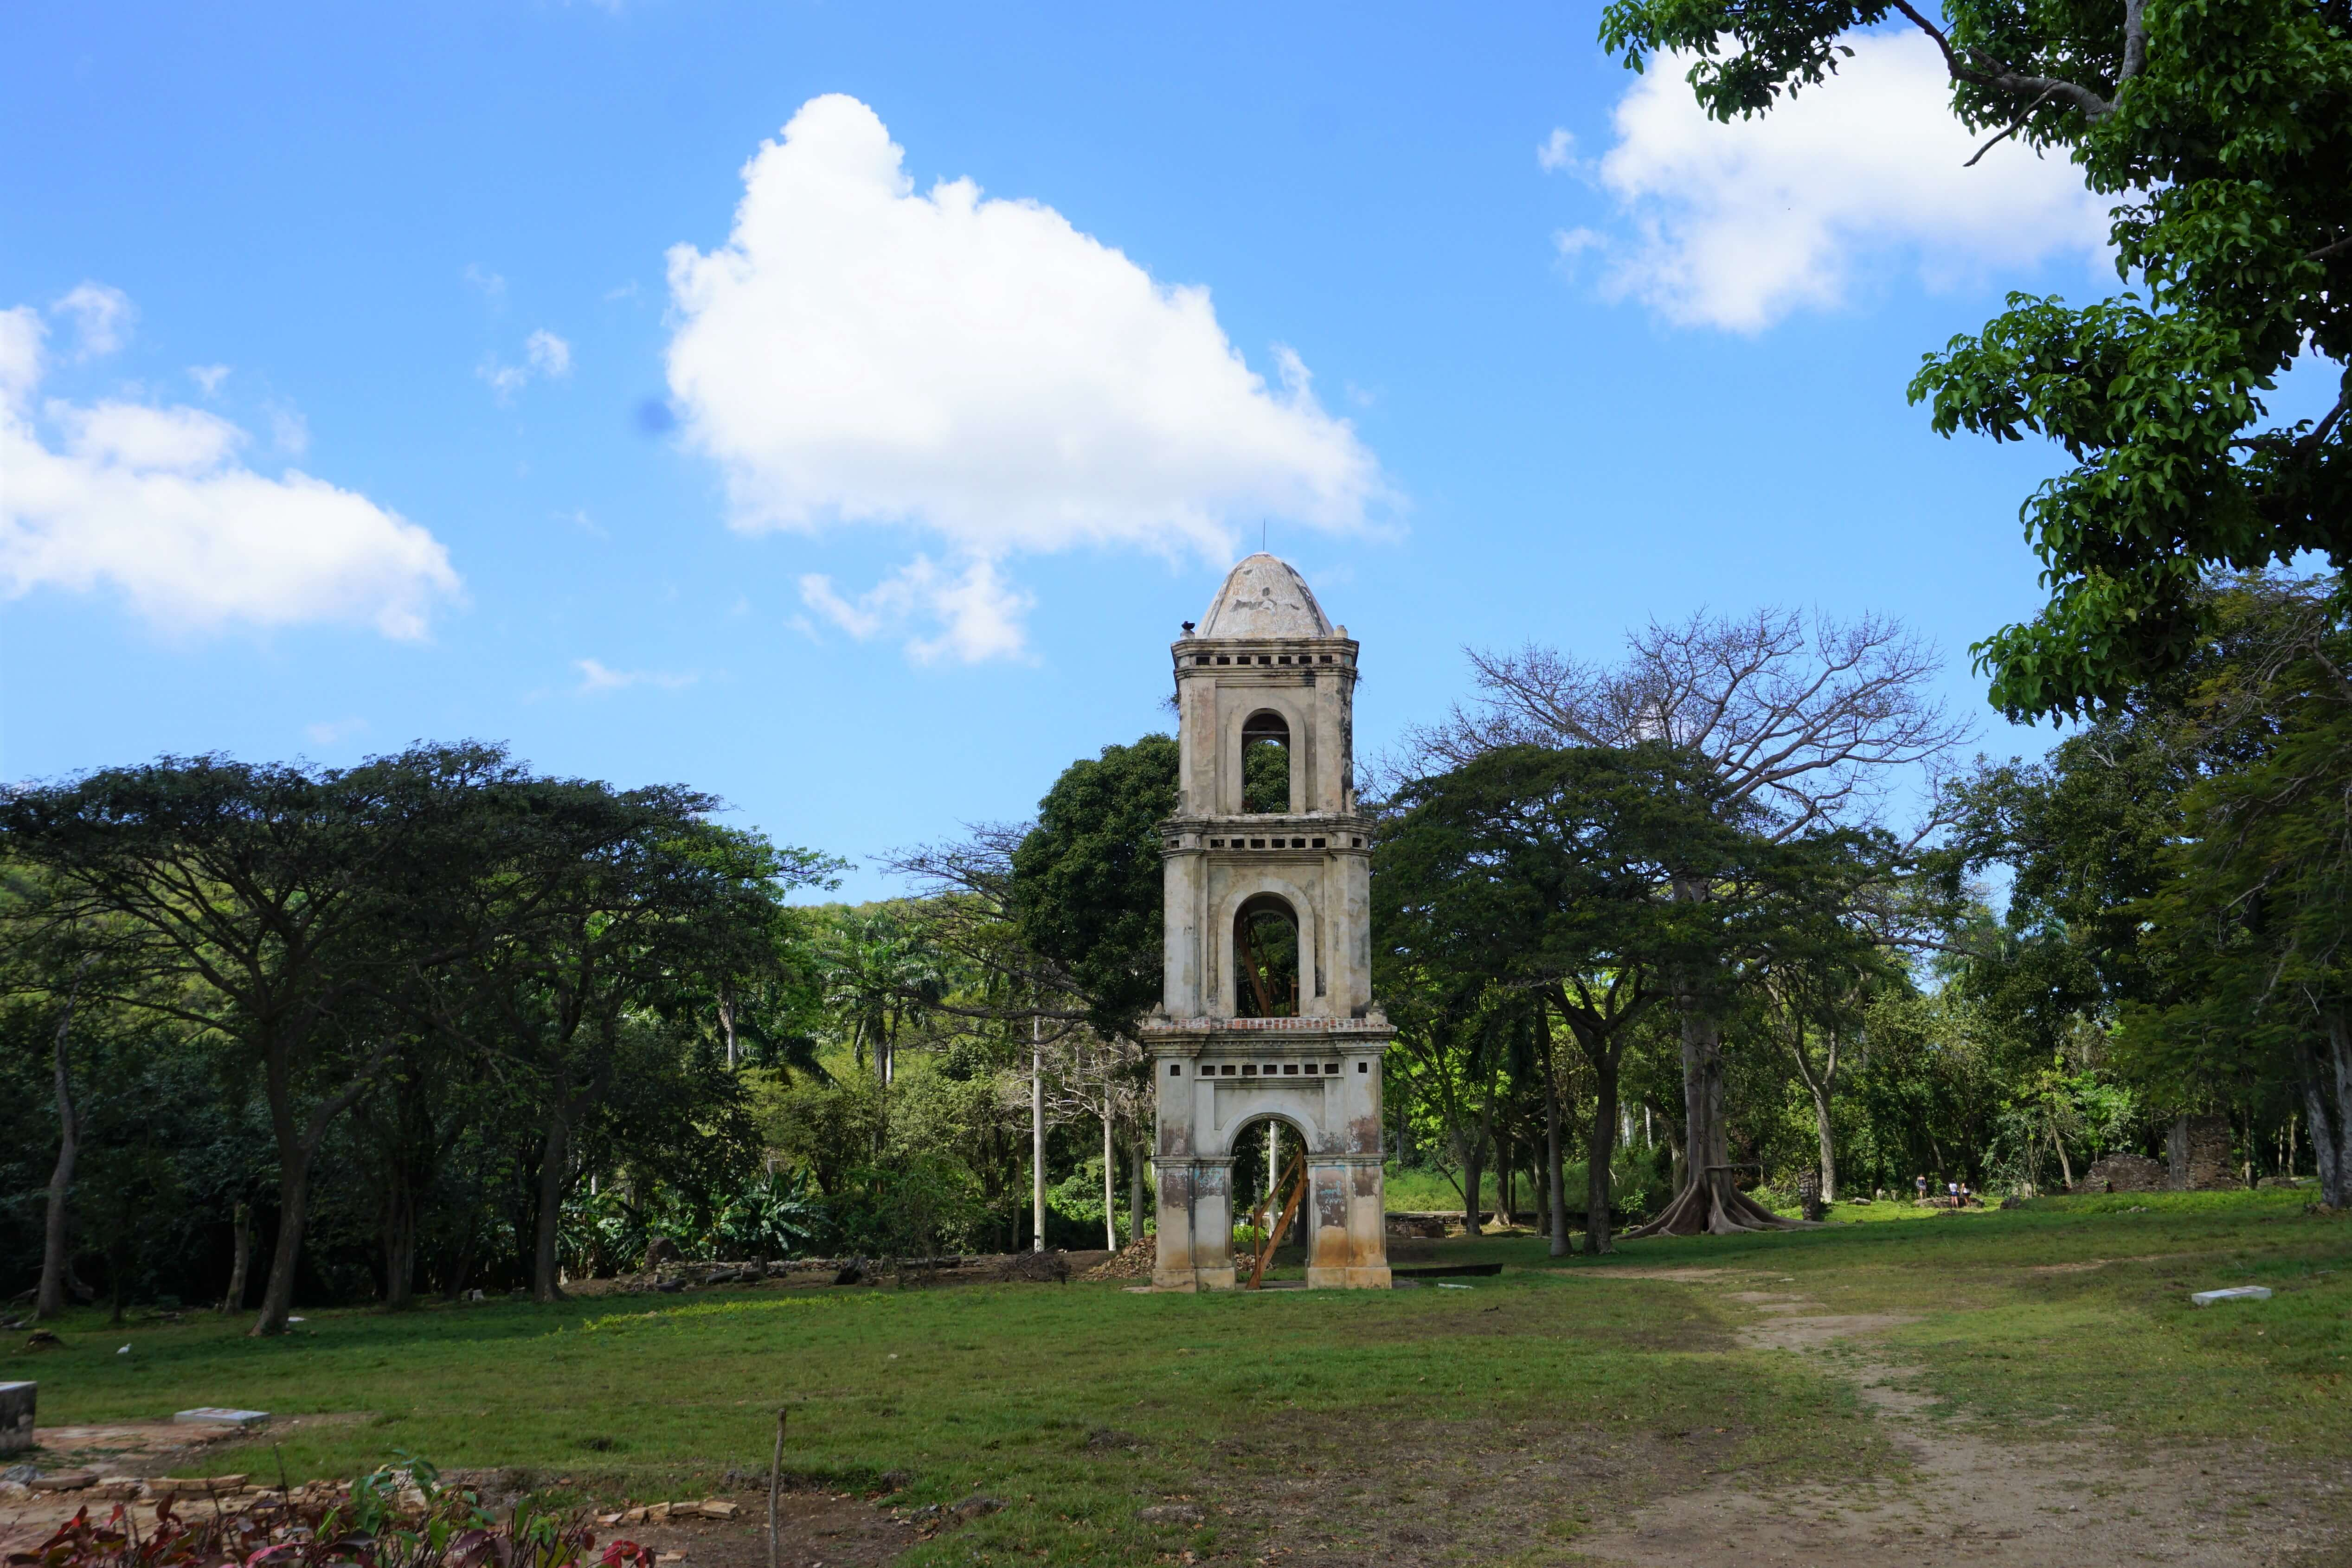 Bell tower of a former sugar cane plantation